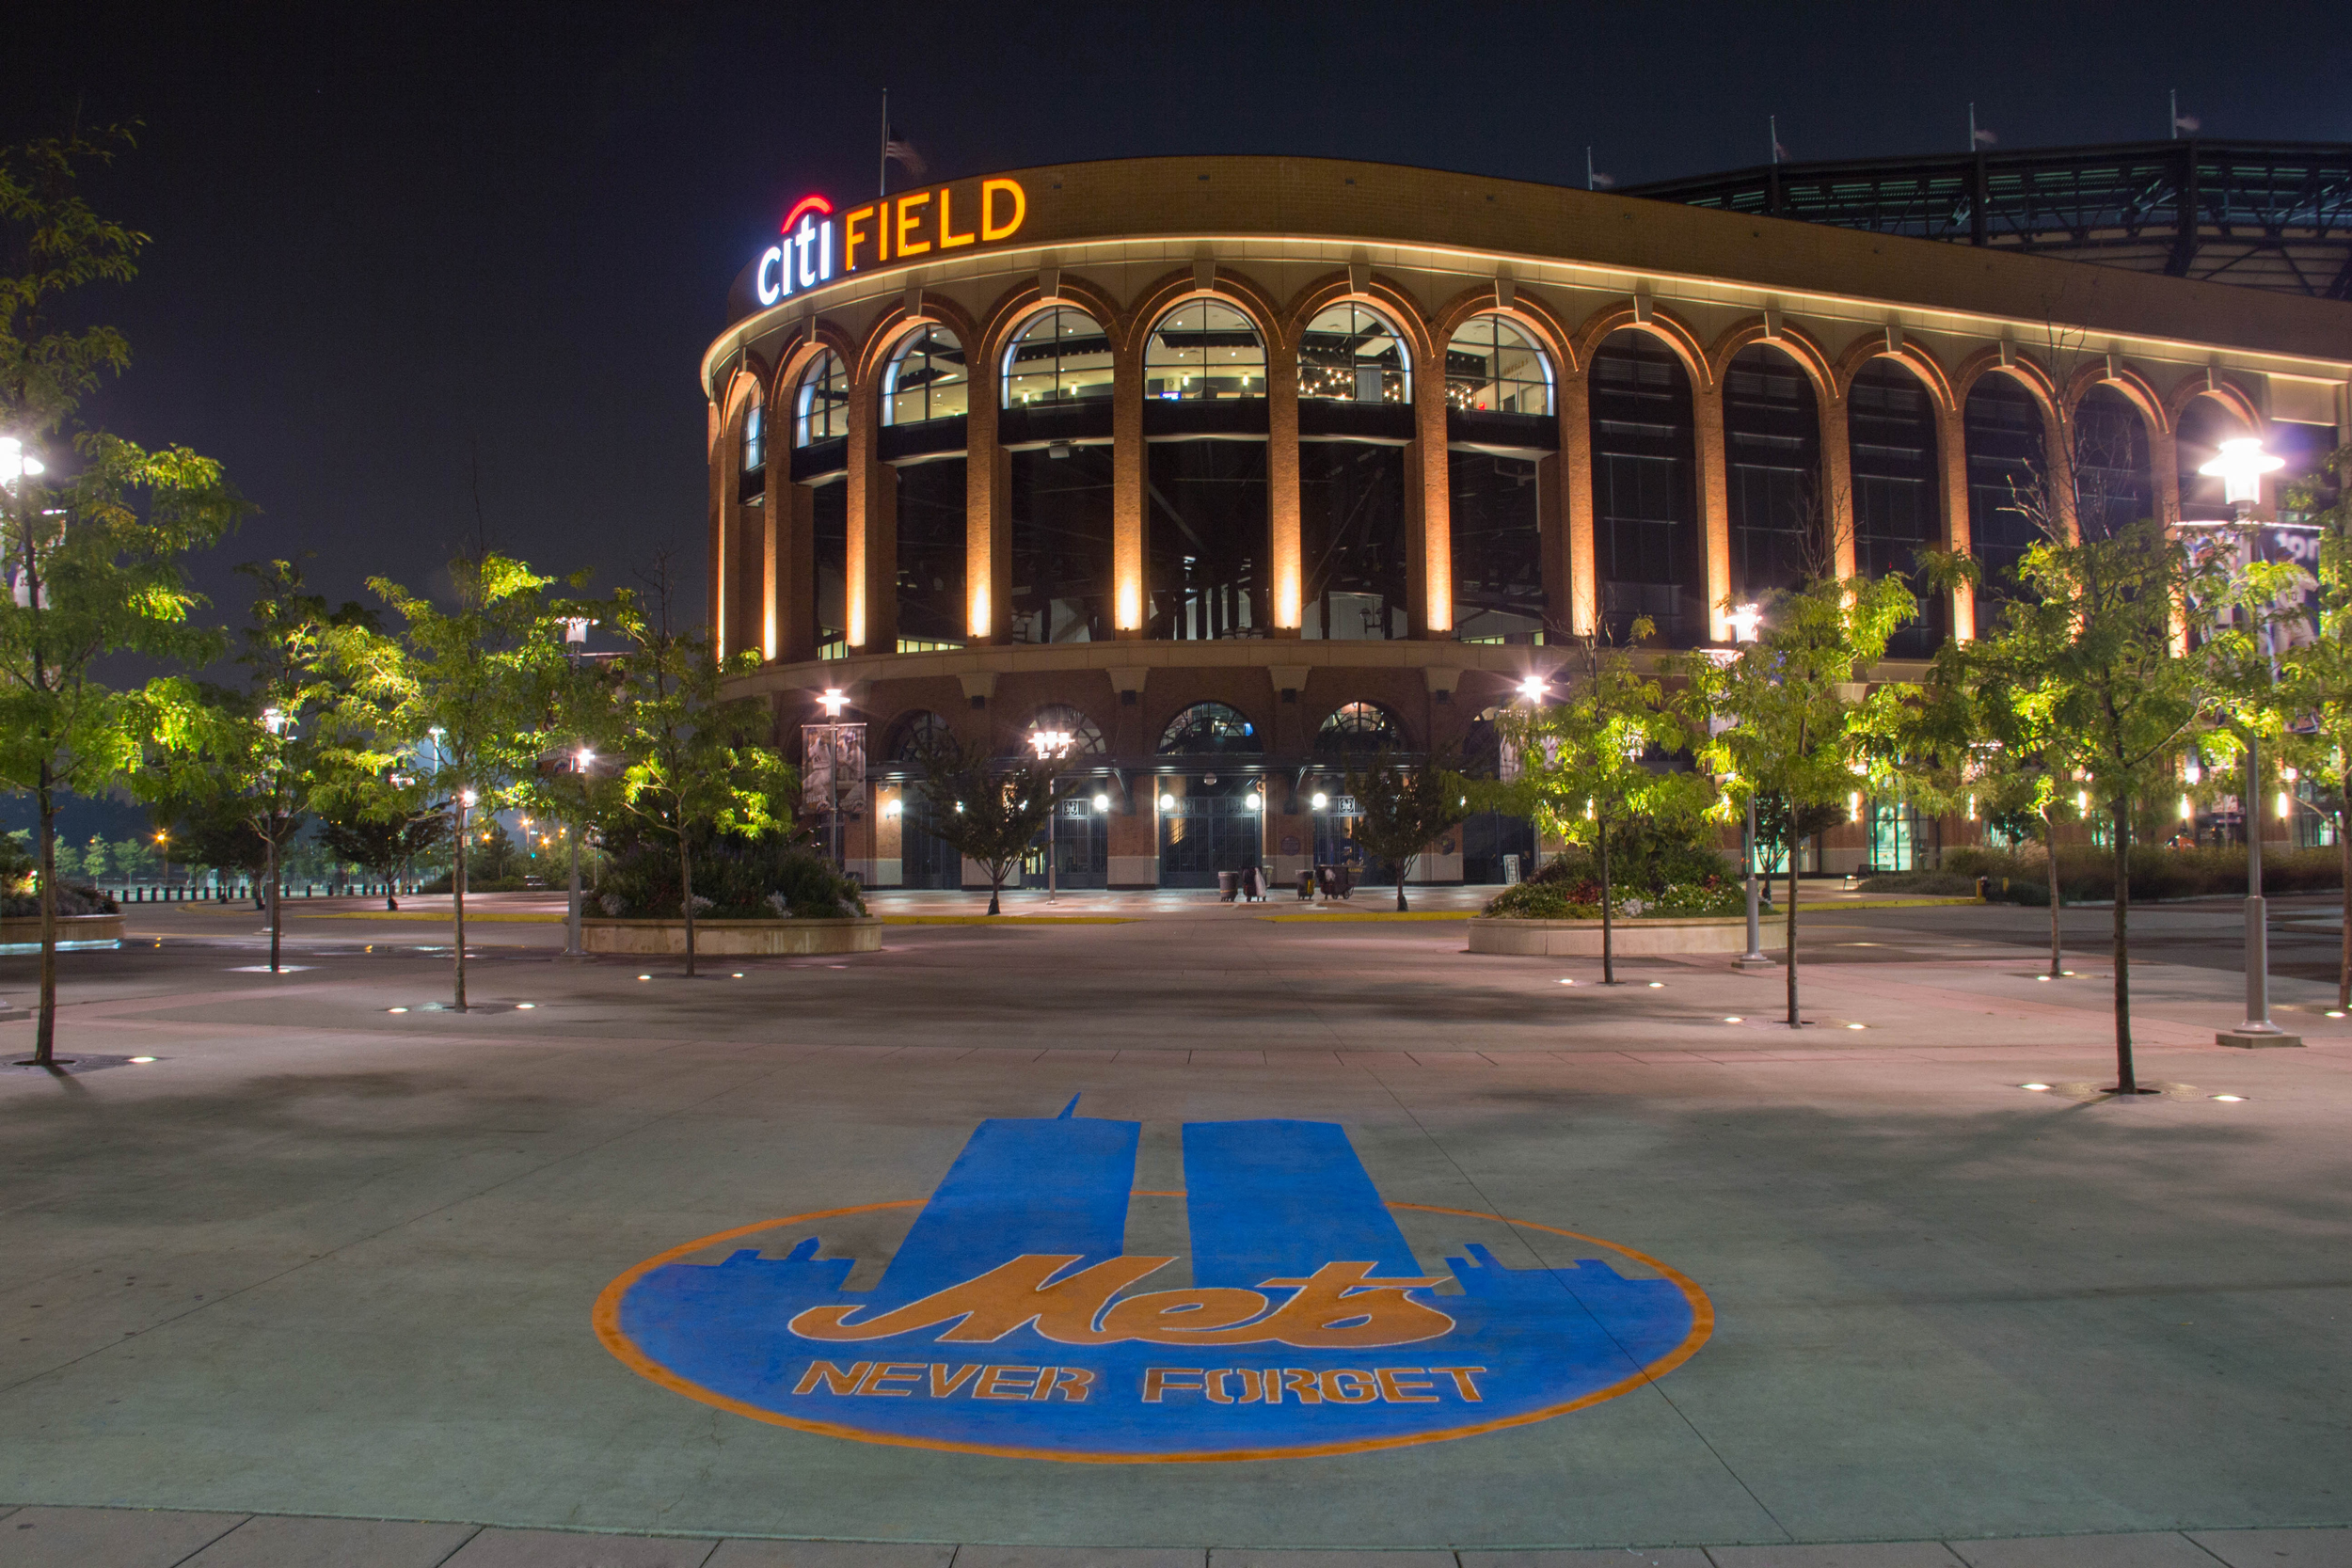 Last Night, Miami Students Chalked A Tribute To 9/11 Outside Citi Field